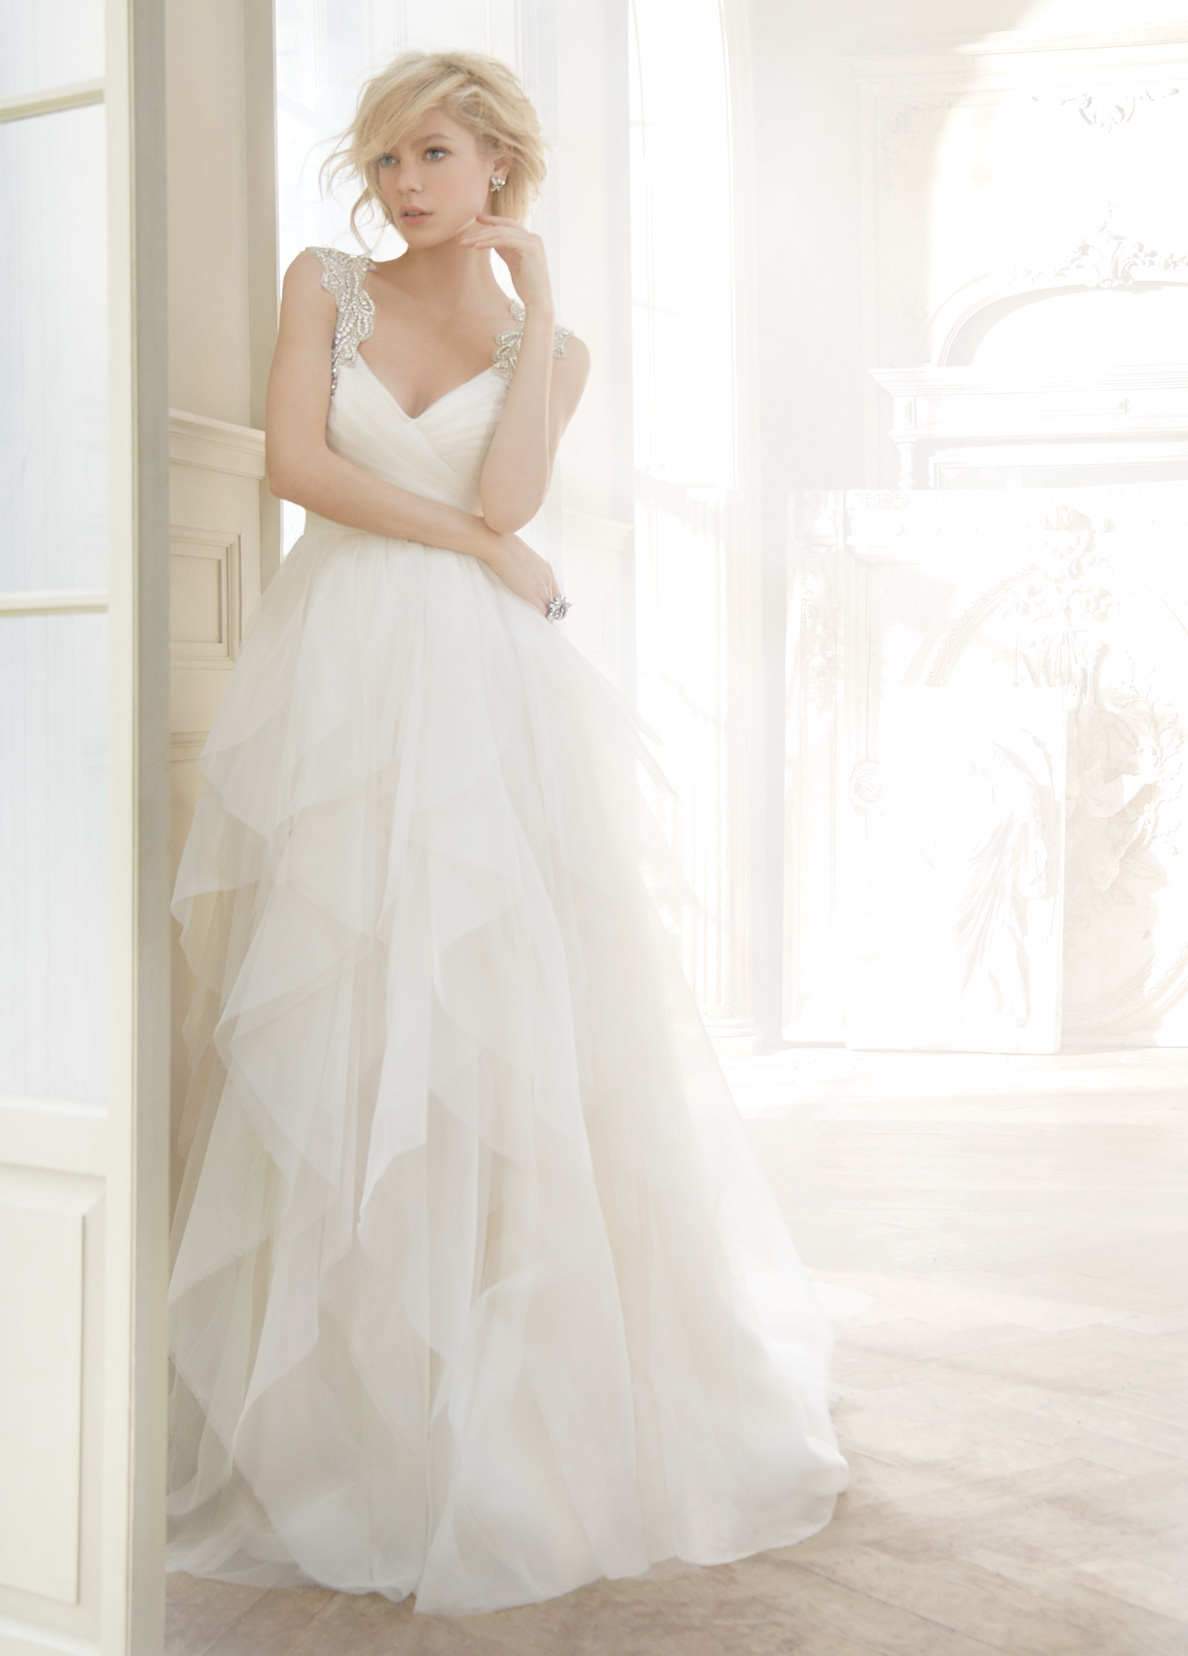 hayley paige wedding dresses hayley paige wedding dress Alluring contrasts are glimpsed in pairings like twinkle and tmatte giving each dress an unmistakable charisma that enhances the bride s own captivating